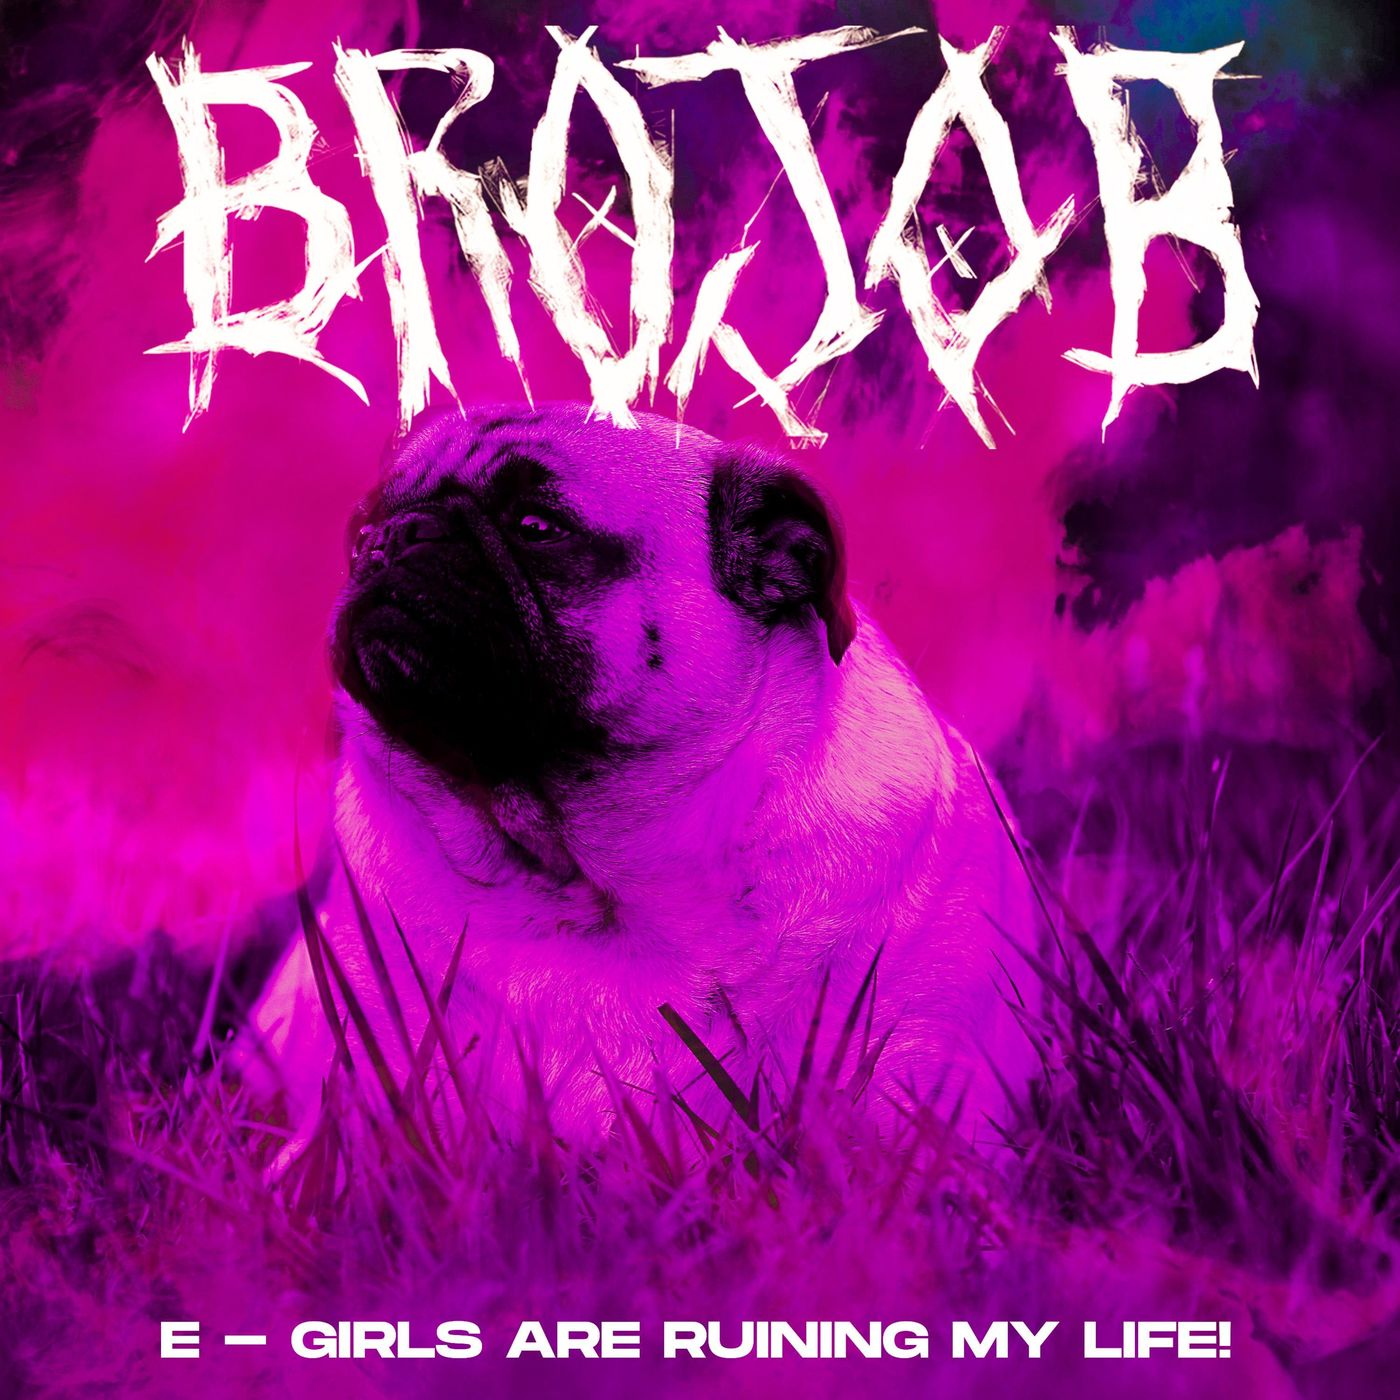 Brojob - E-GIRLS ARE RUINING MY LIFE! [single] (2020)